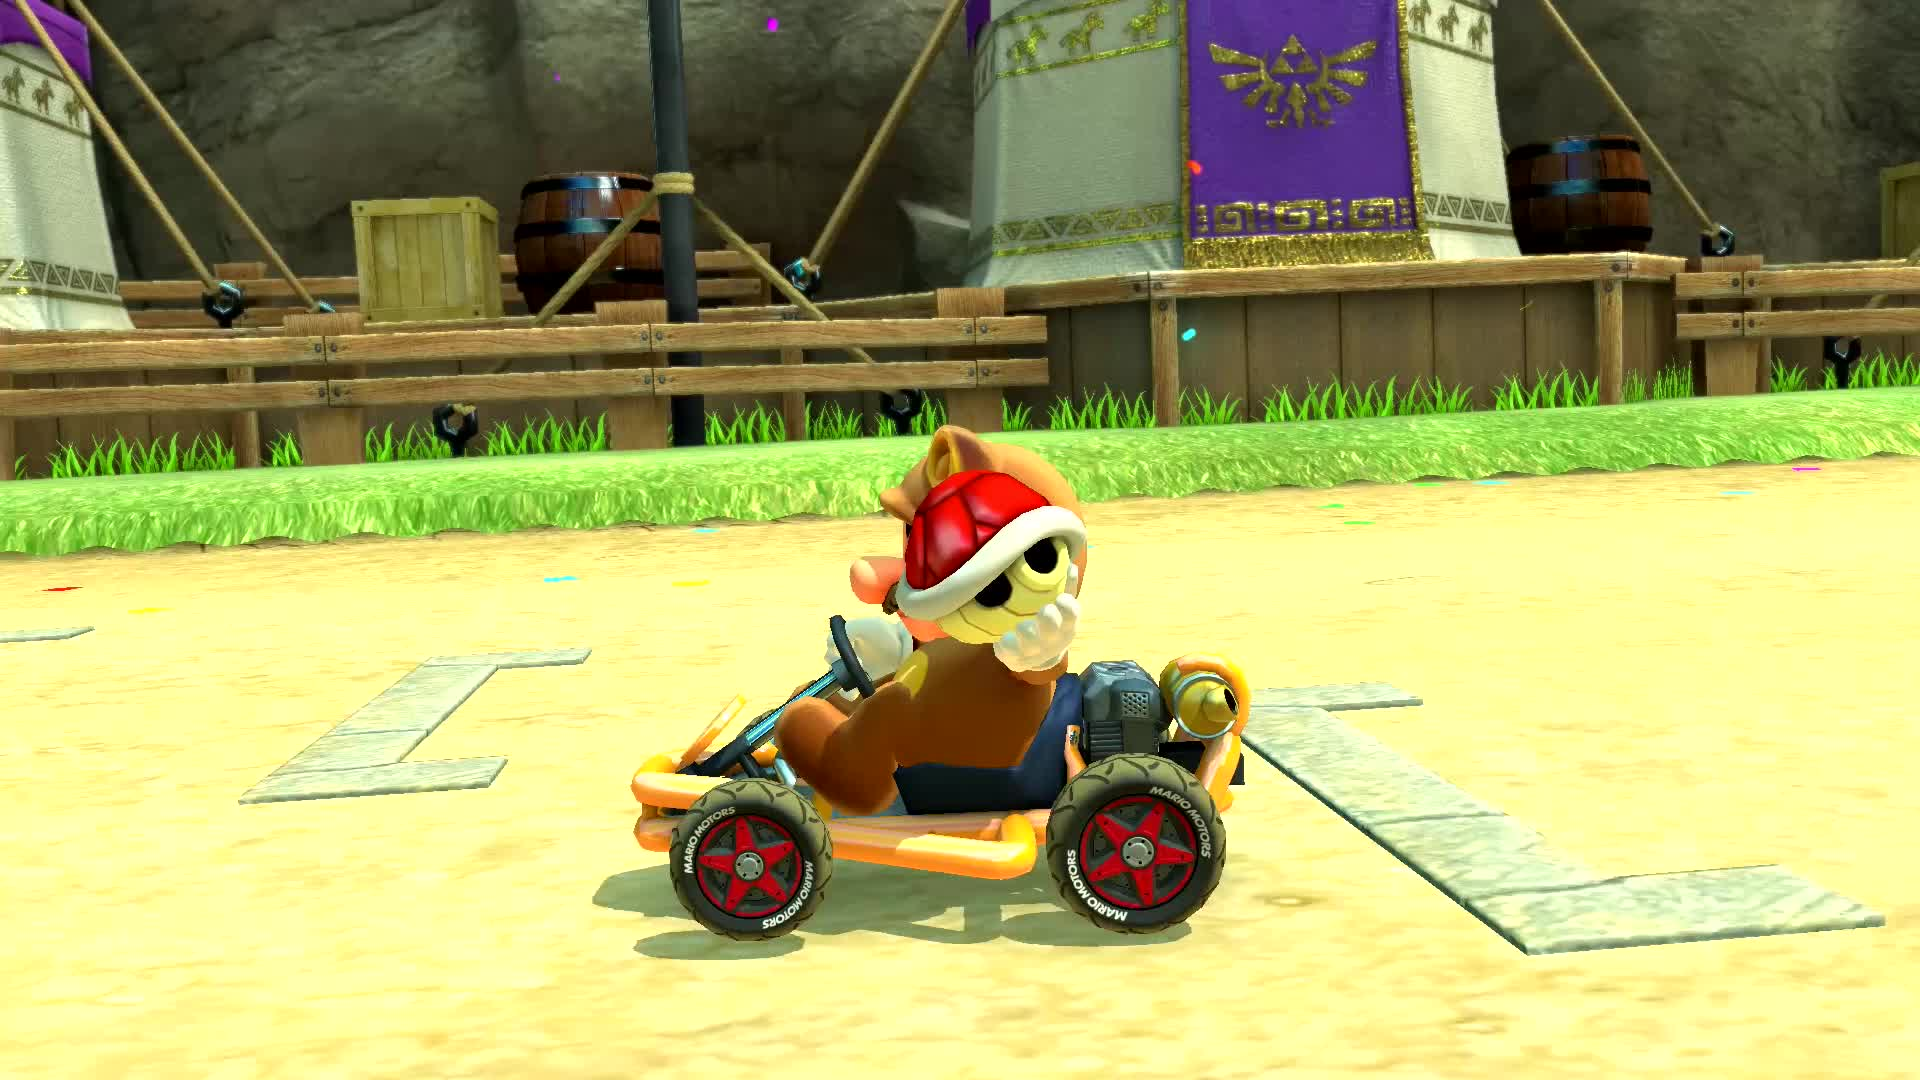 mariokart, Have It Back! GIFs